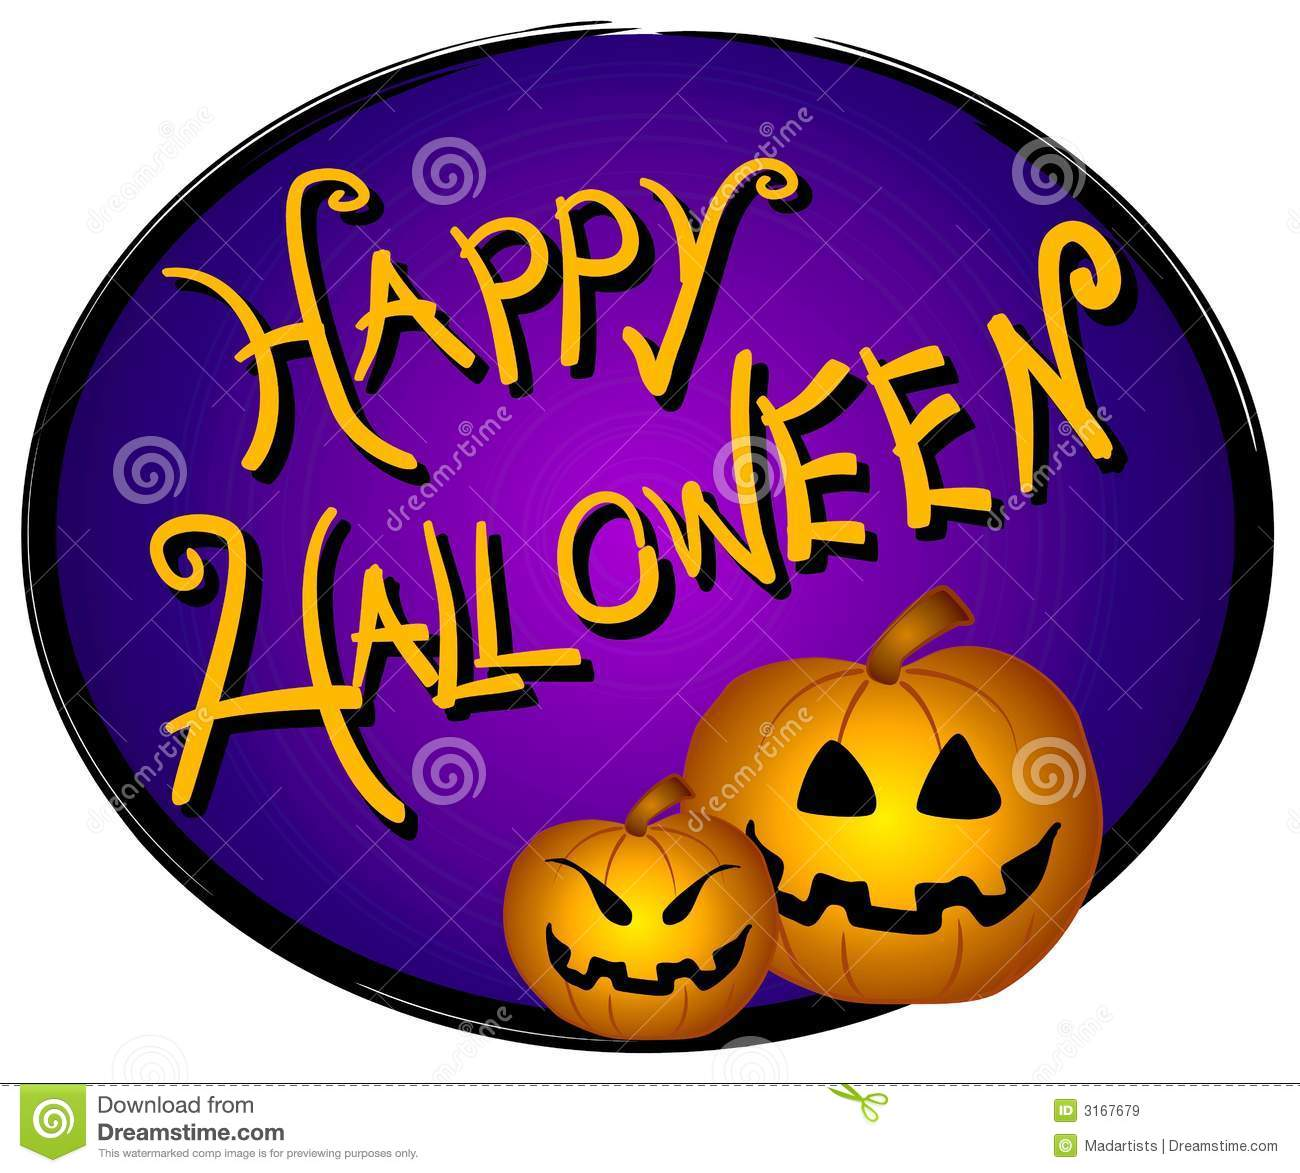 clip art illustration of a Happy Halloween banner, logo or sign with ...